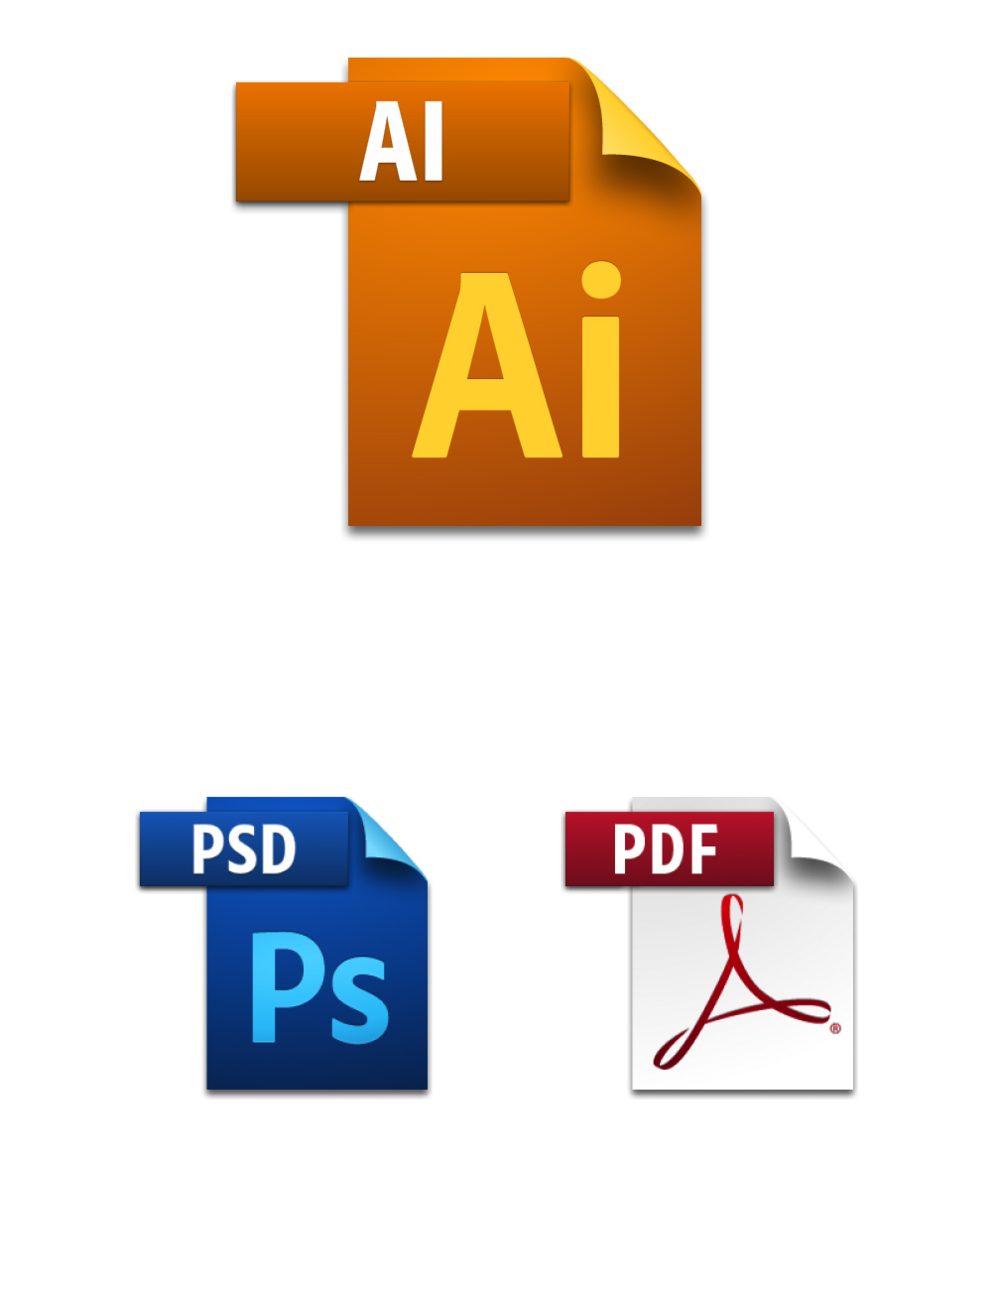 Adobe_Illustrator_.AI_File_Icon.jpg